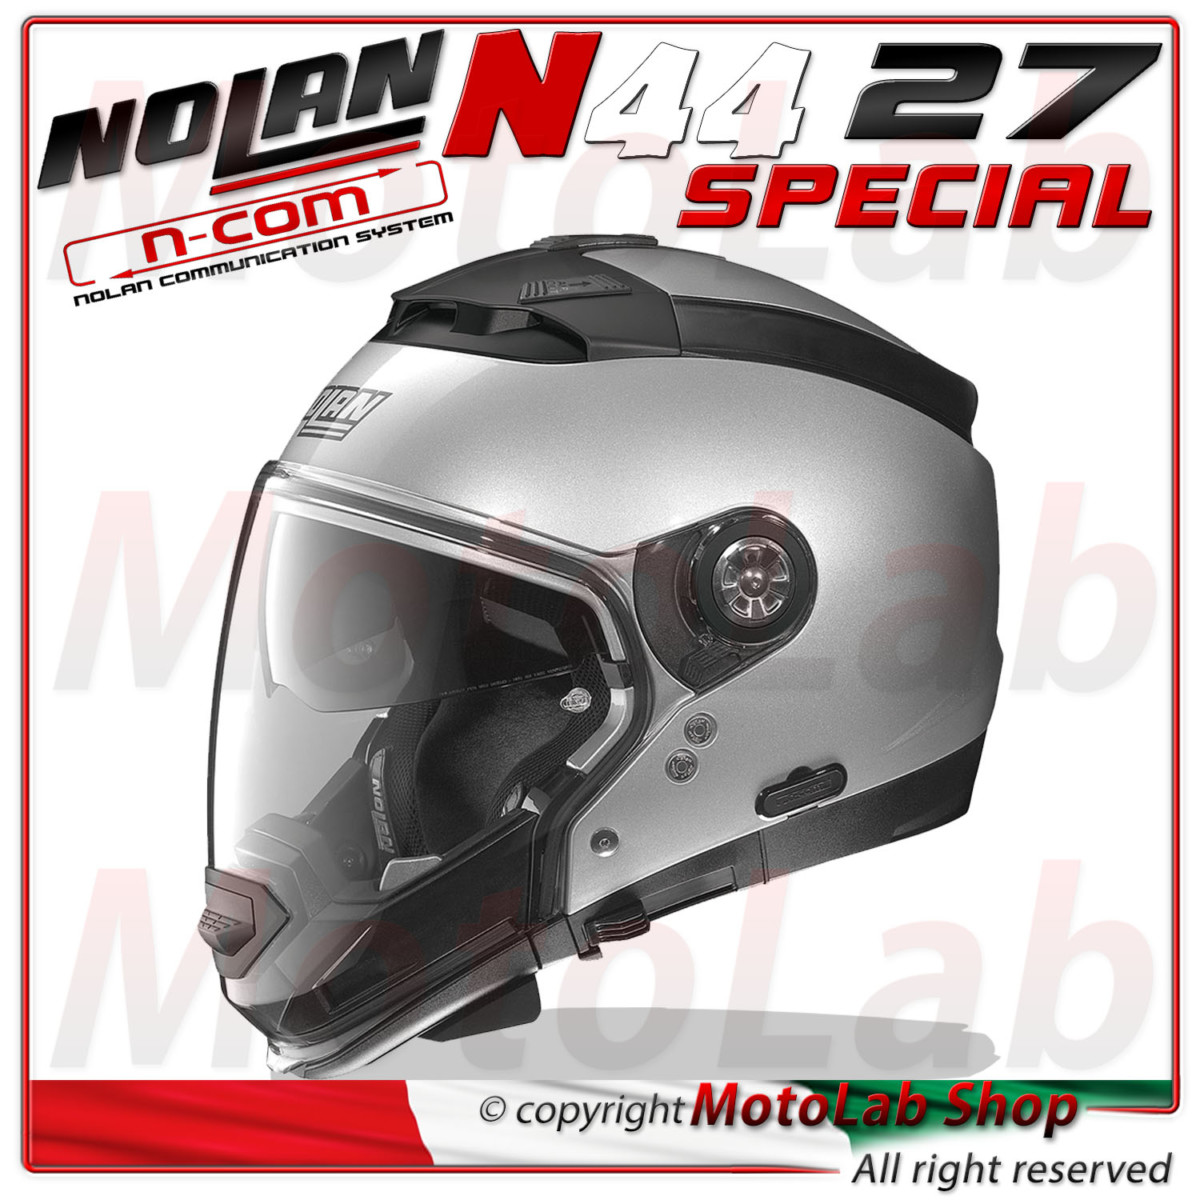 Casque Modulare Nolan N44 Special N COM 27 Salt Silver Argent Taille